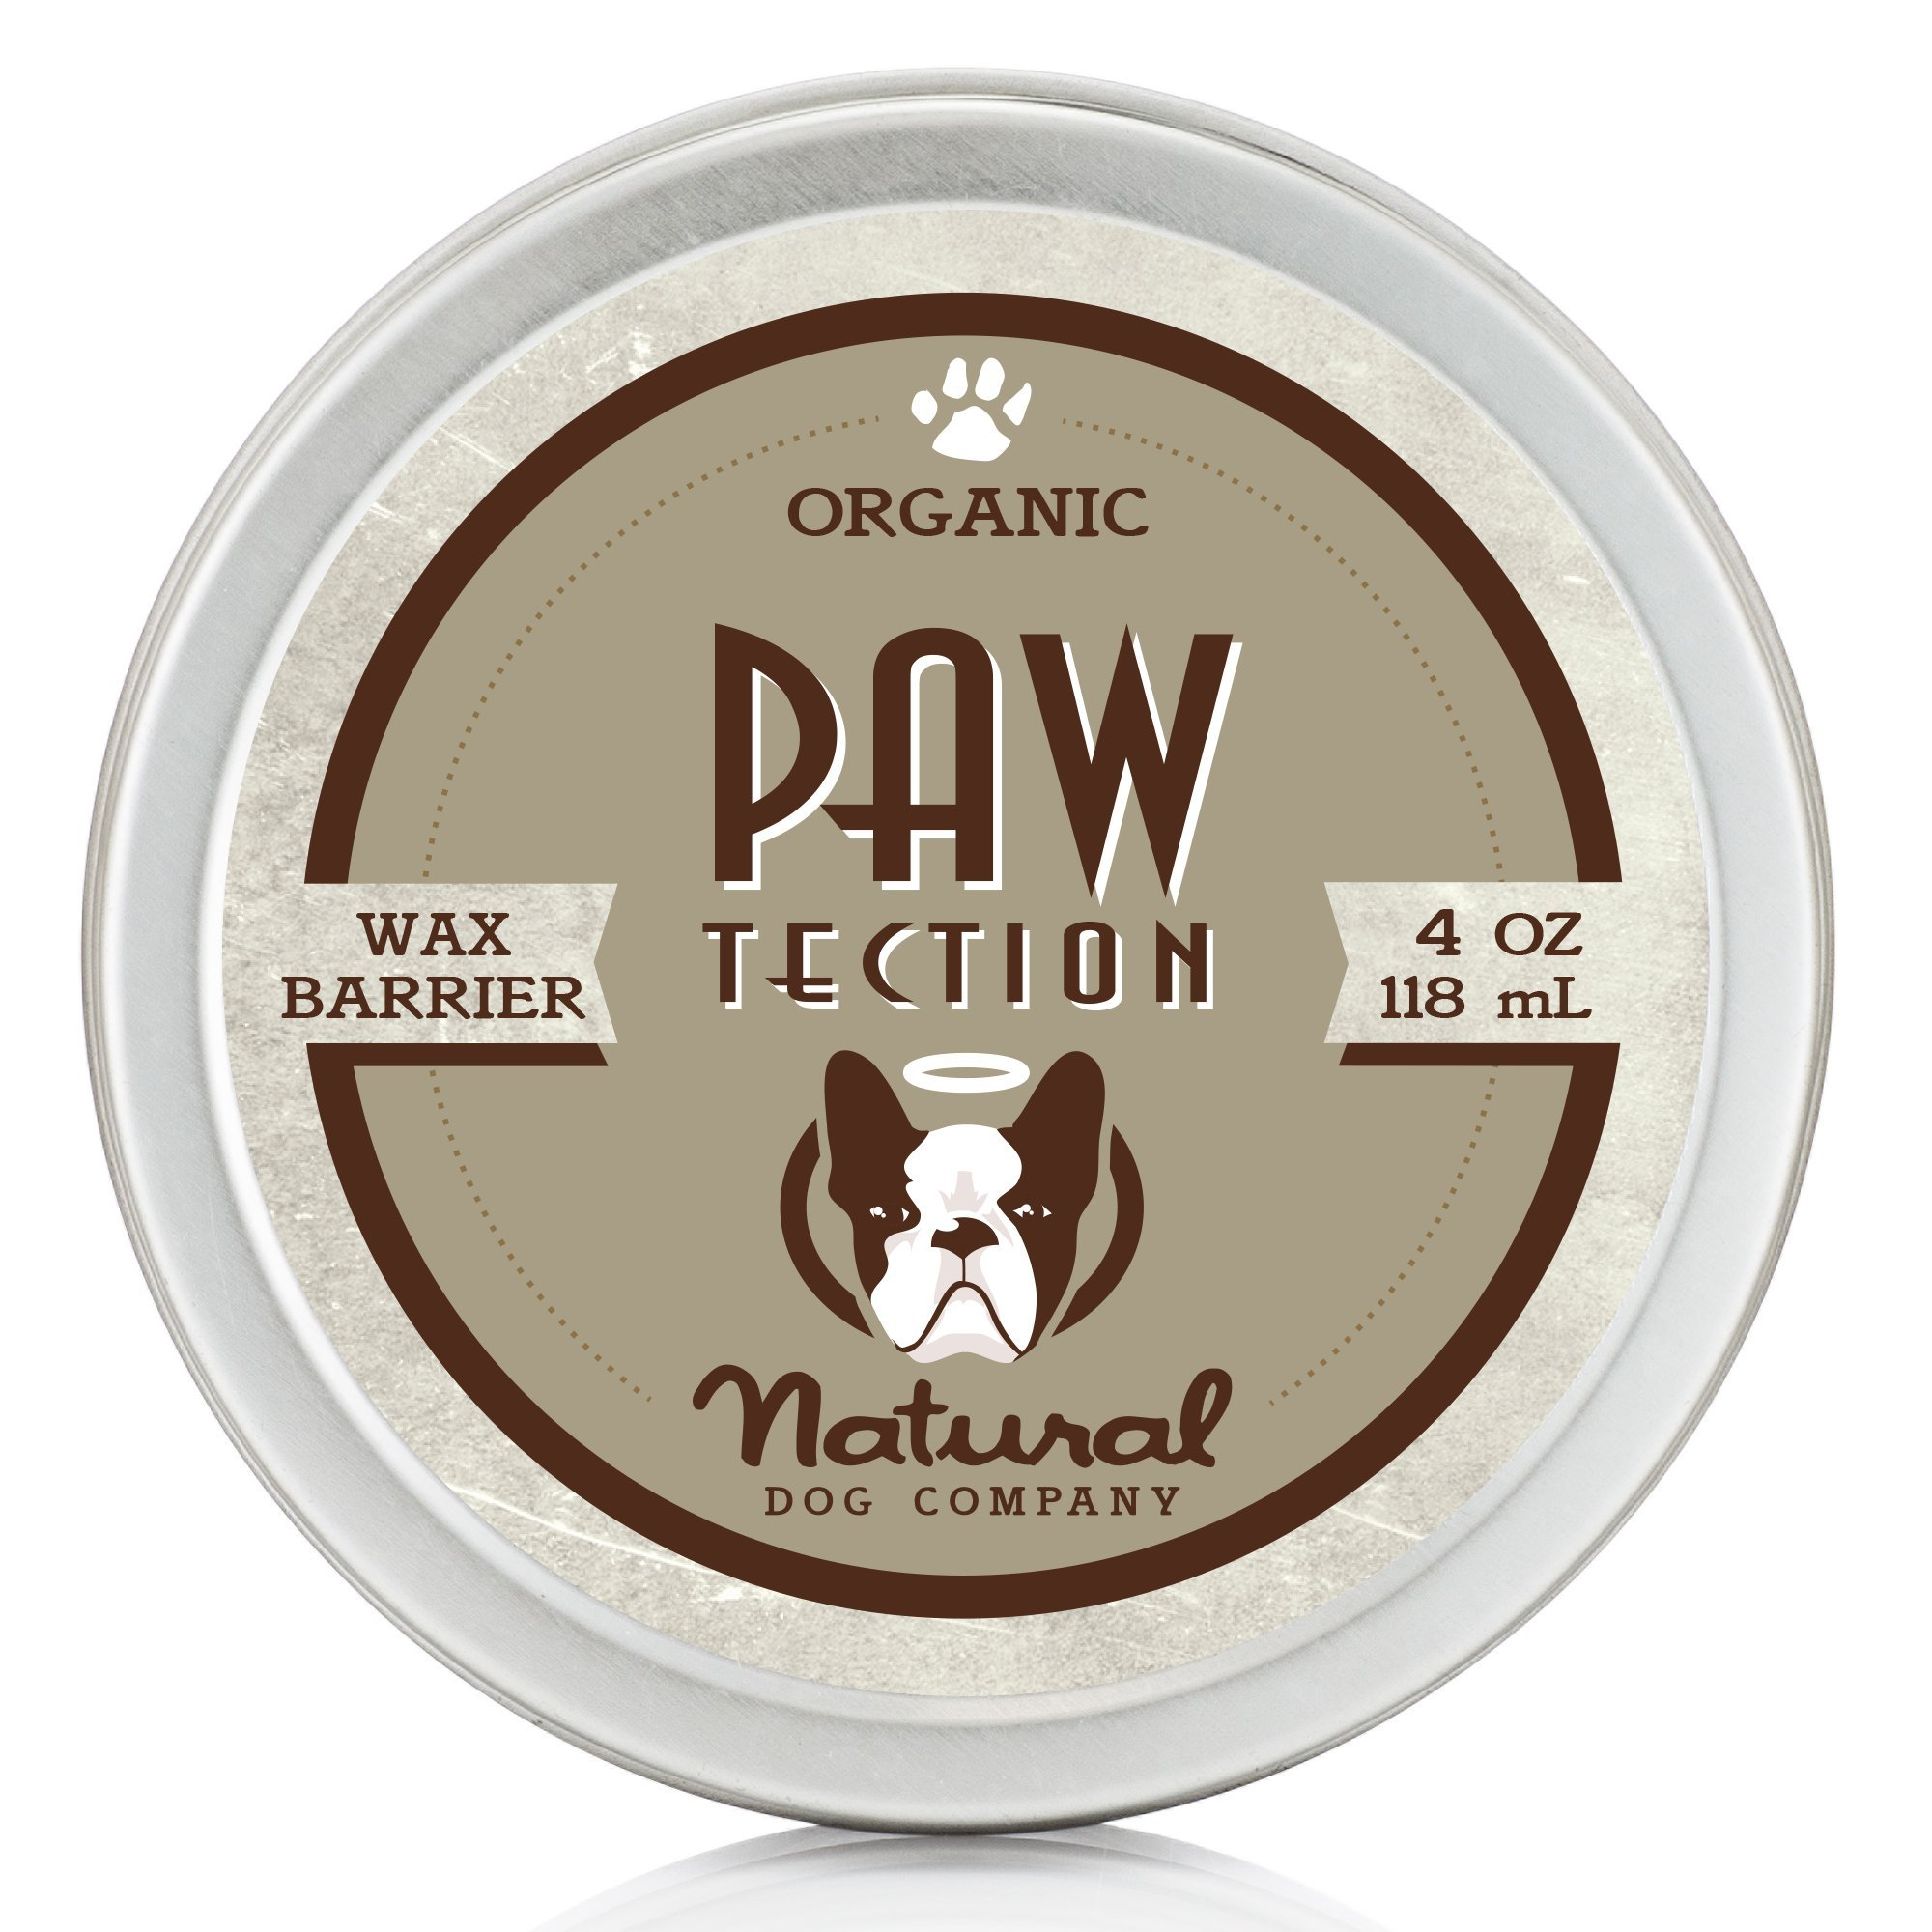 Natural Dog Company - PawTection | Protect Dog's Paw Pads, Perfect for Hot Asphalt, Salt, Snow | Organic, Vegan | 4 Oz Tin by Natural Dog Company